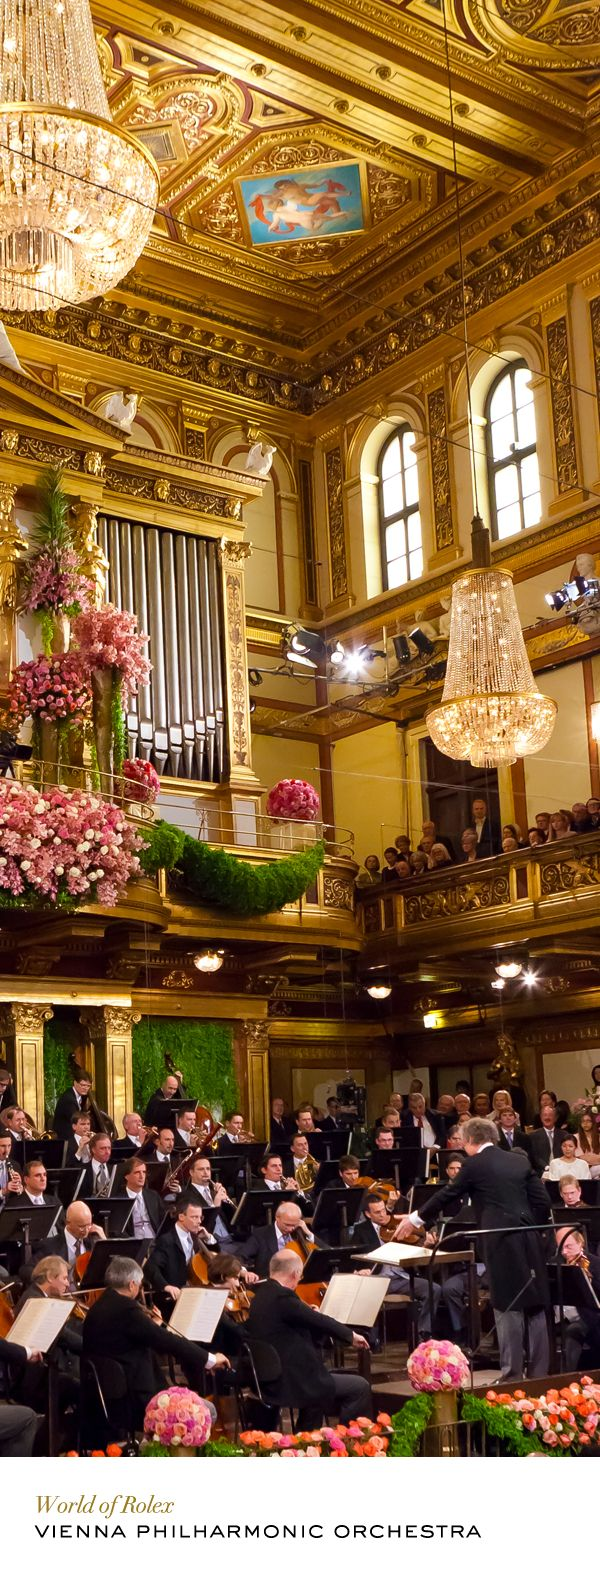 The Vienna Philharmonic Orchestra and its renowned New Year's Concert, a moment of sheer brilliance.   ᘡղbᘠ